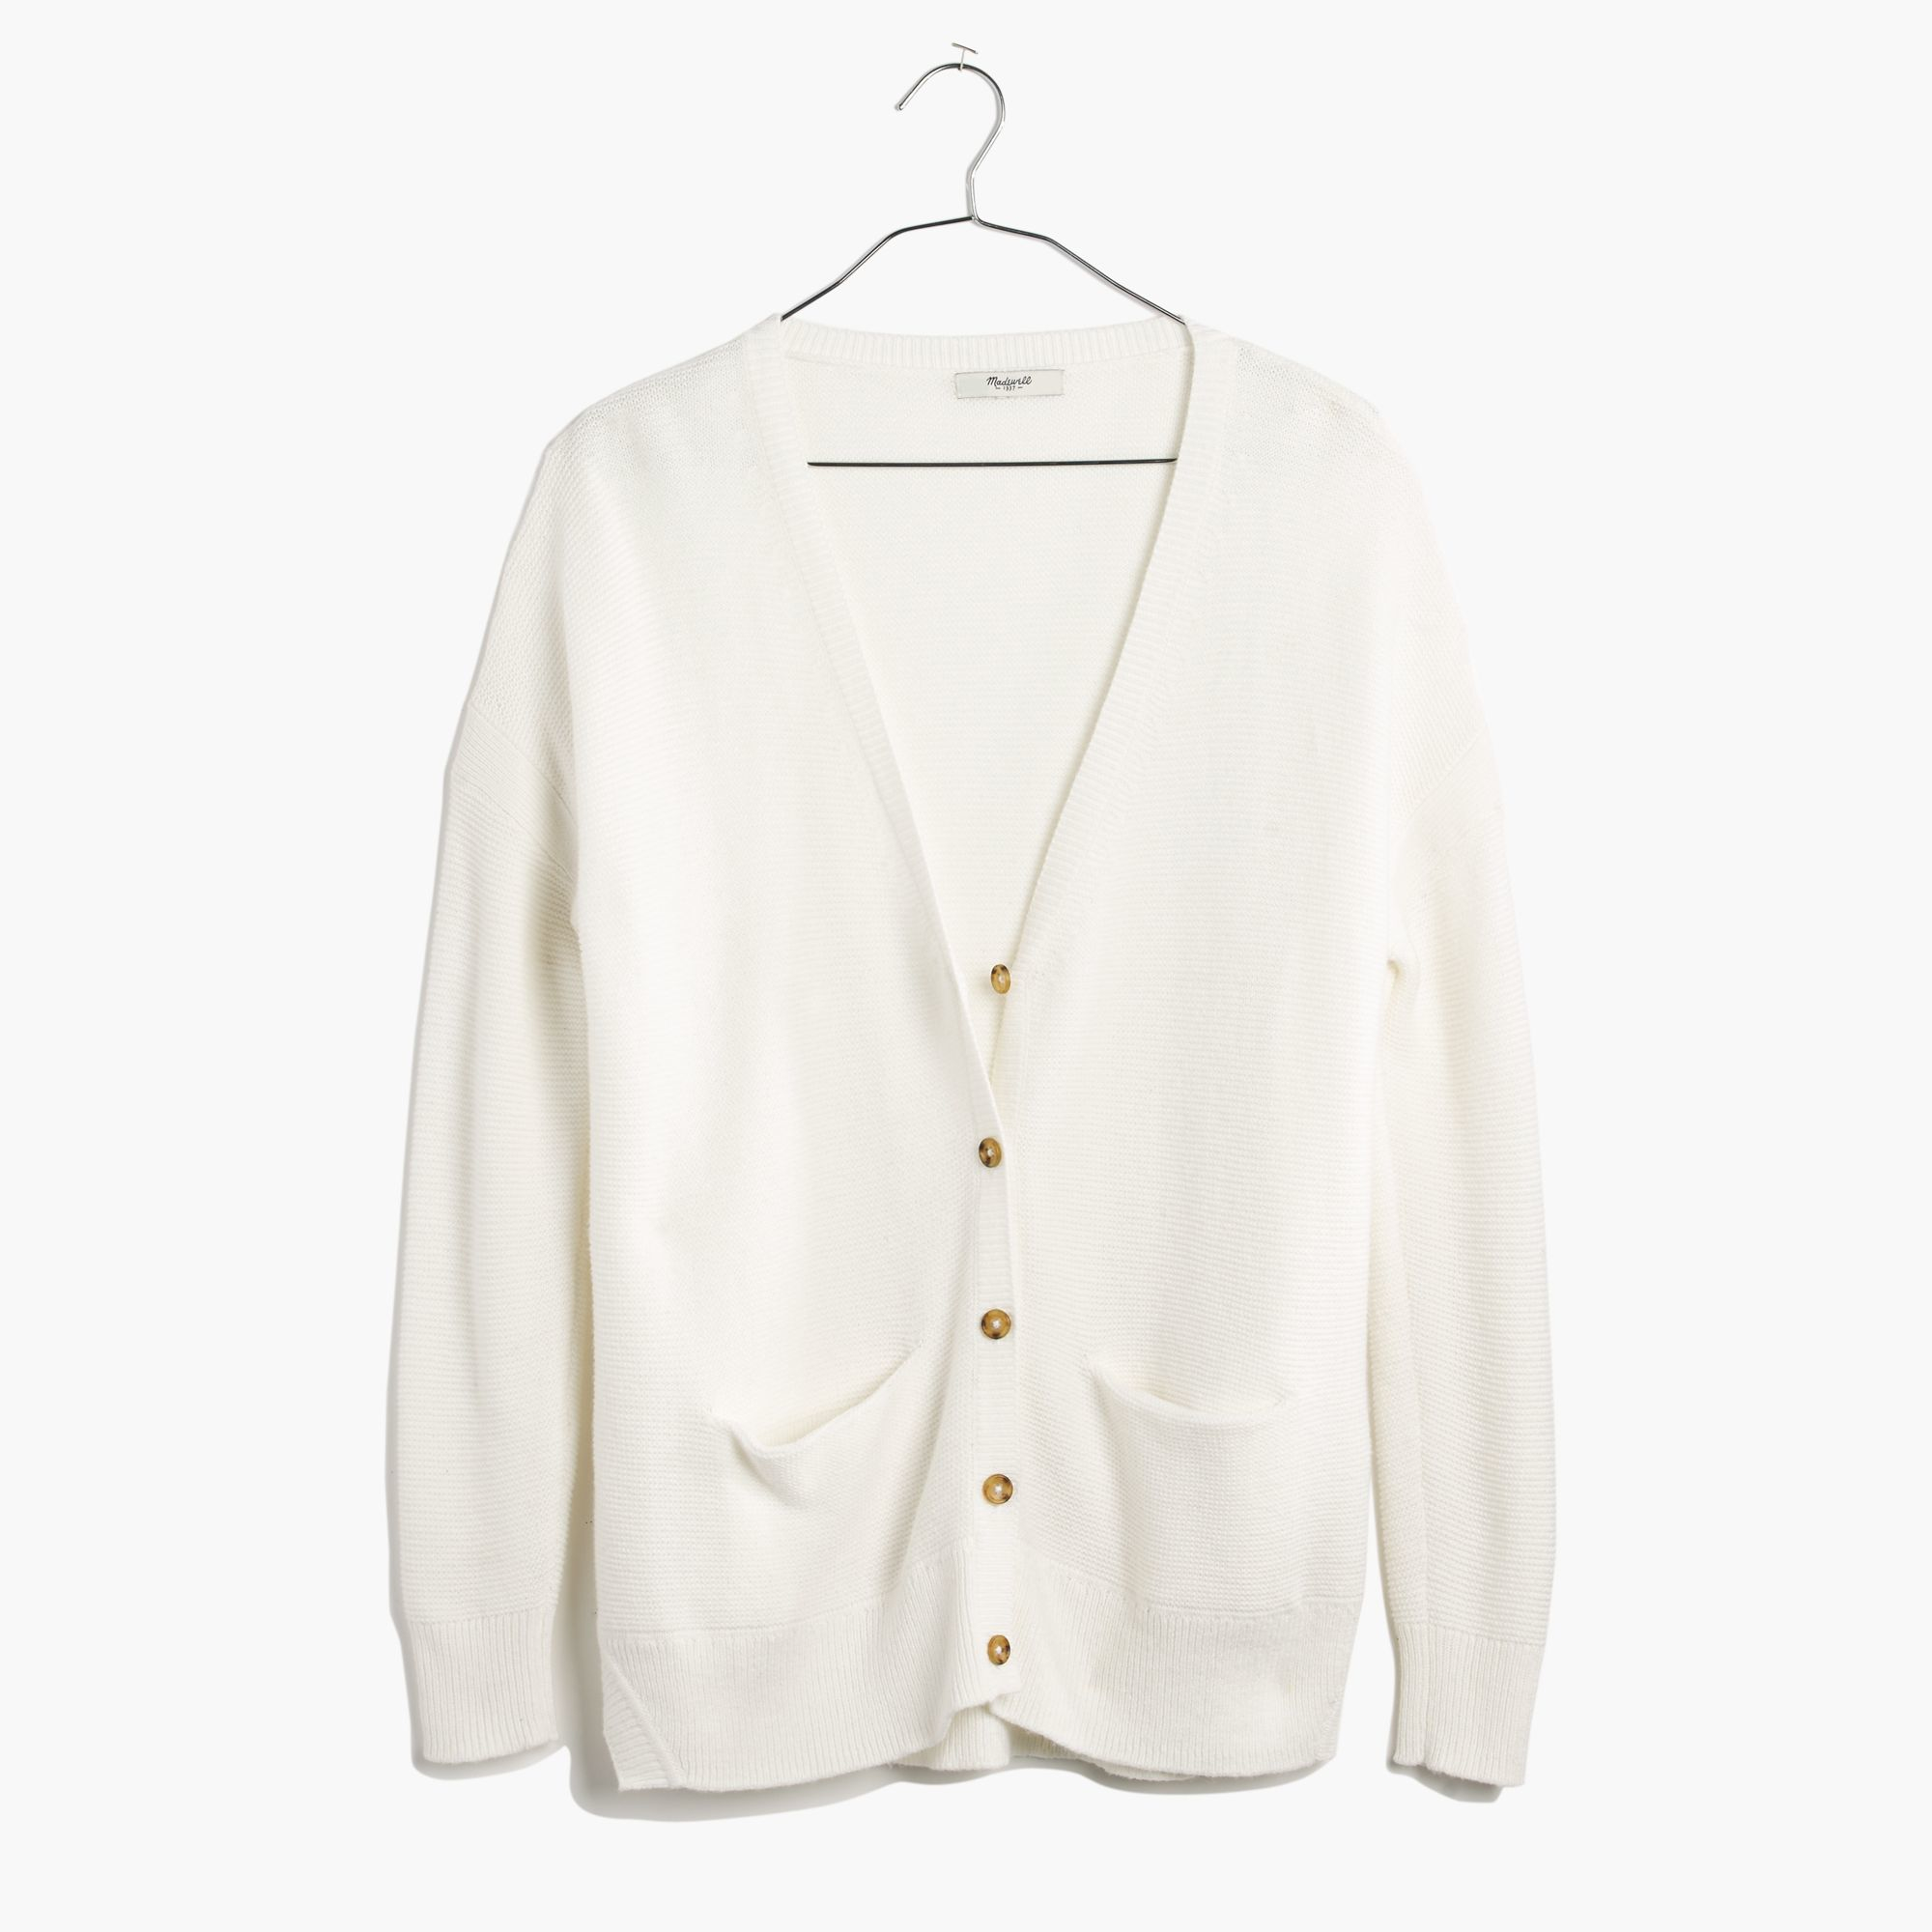 Madewell Textured Landscape Cardigan Sweater in White   Lyst